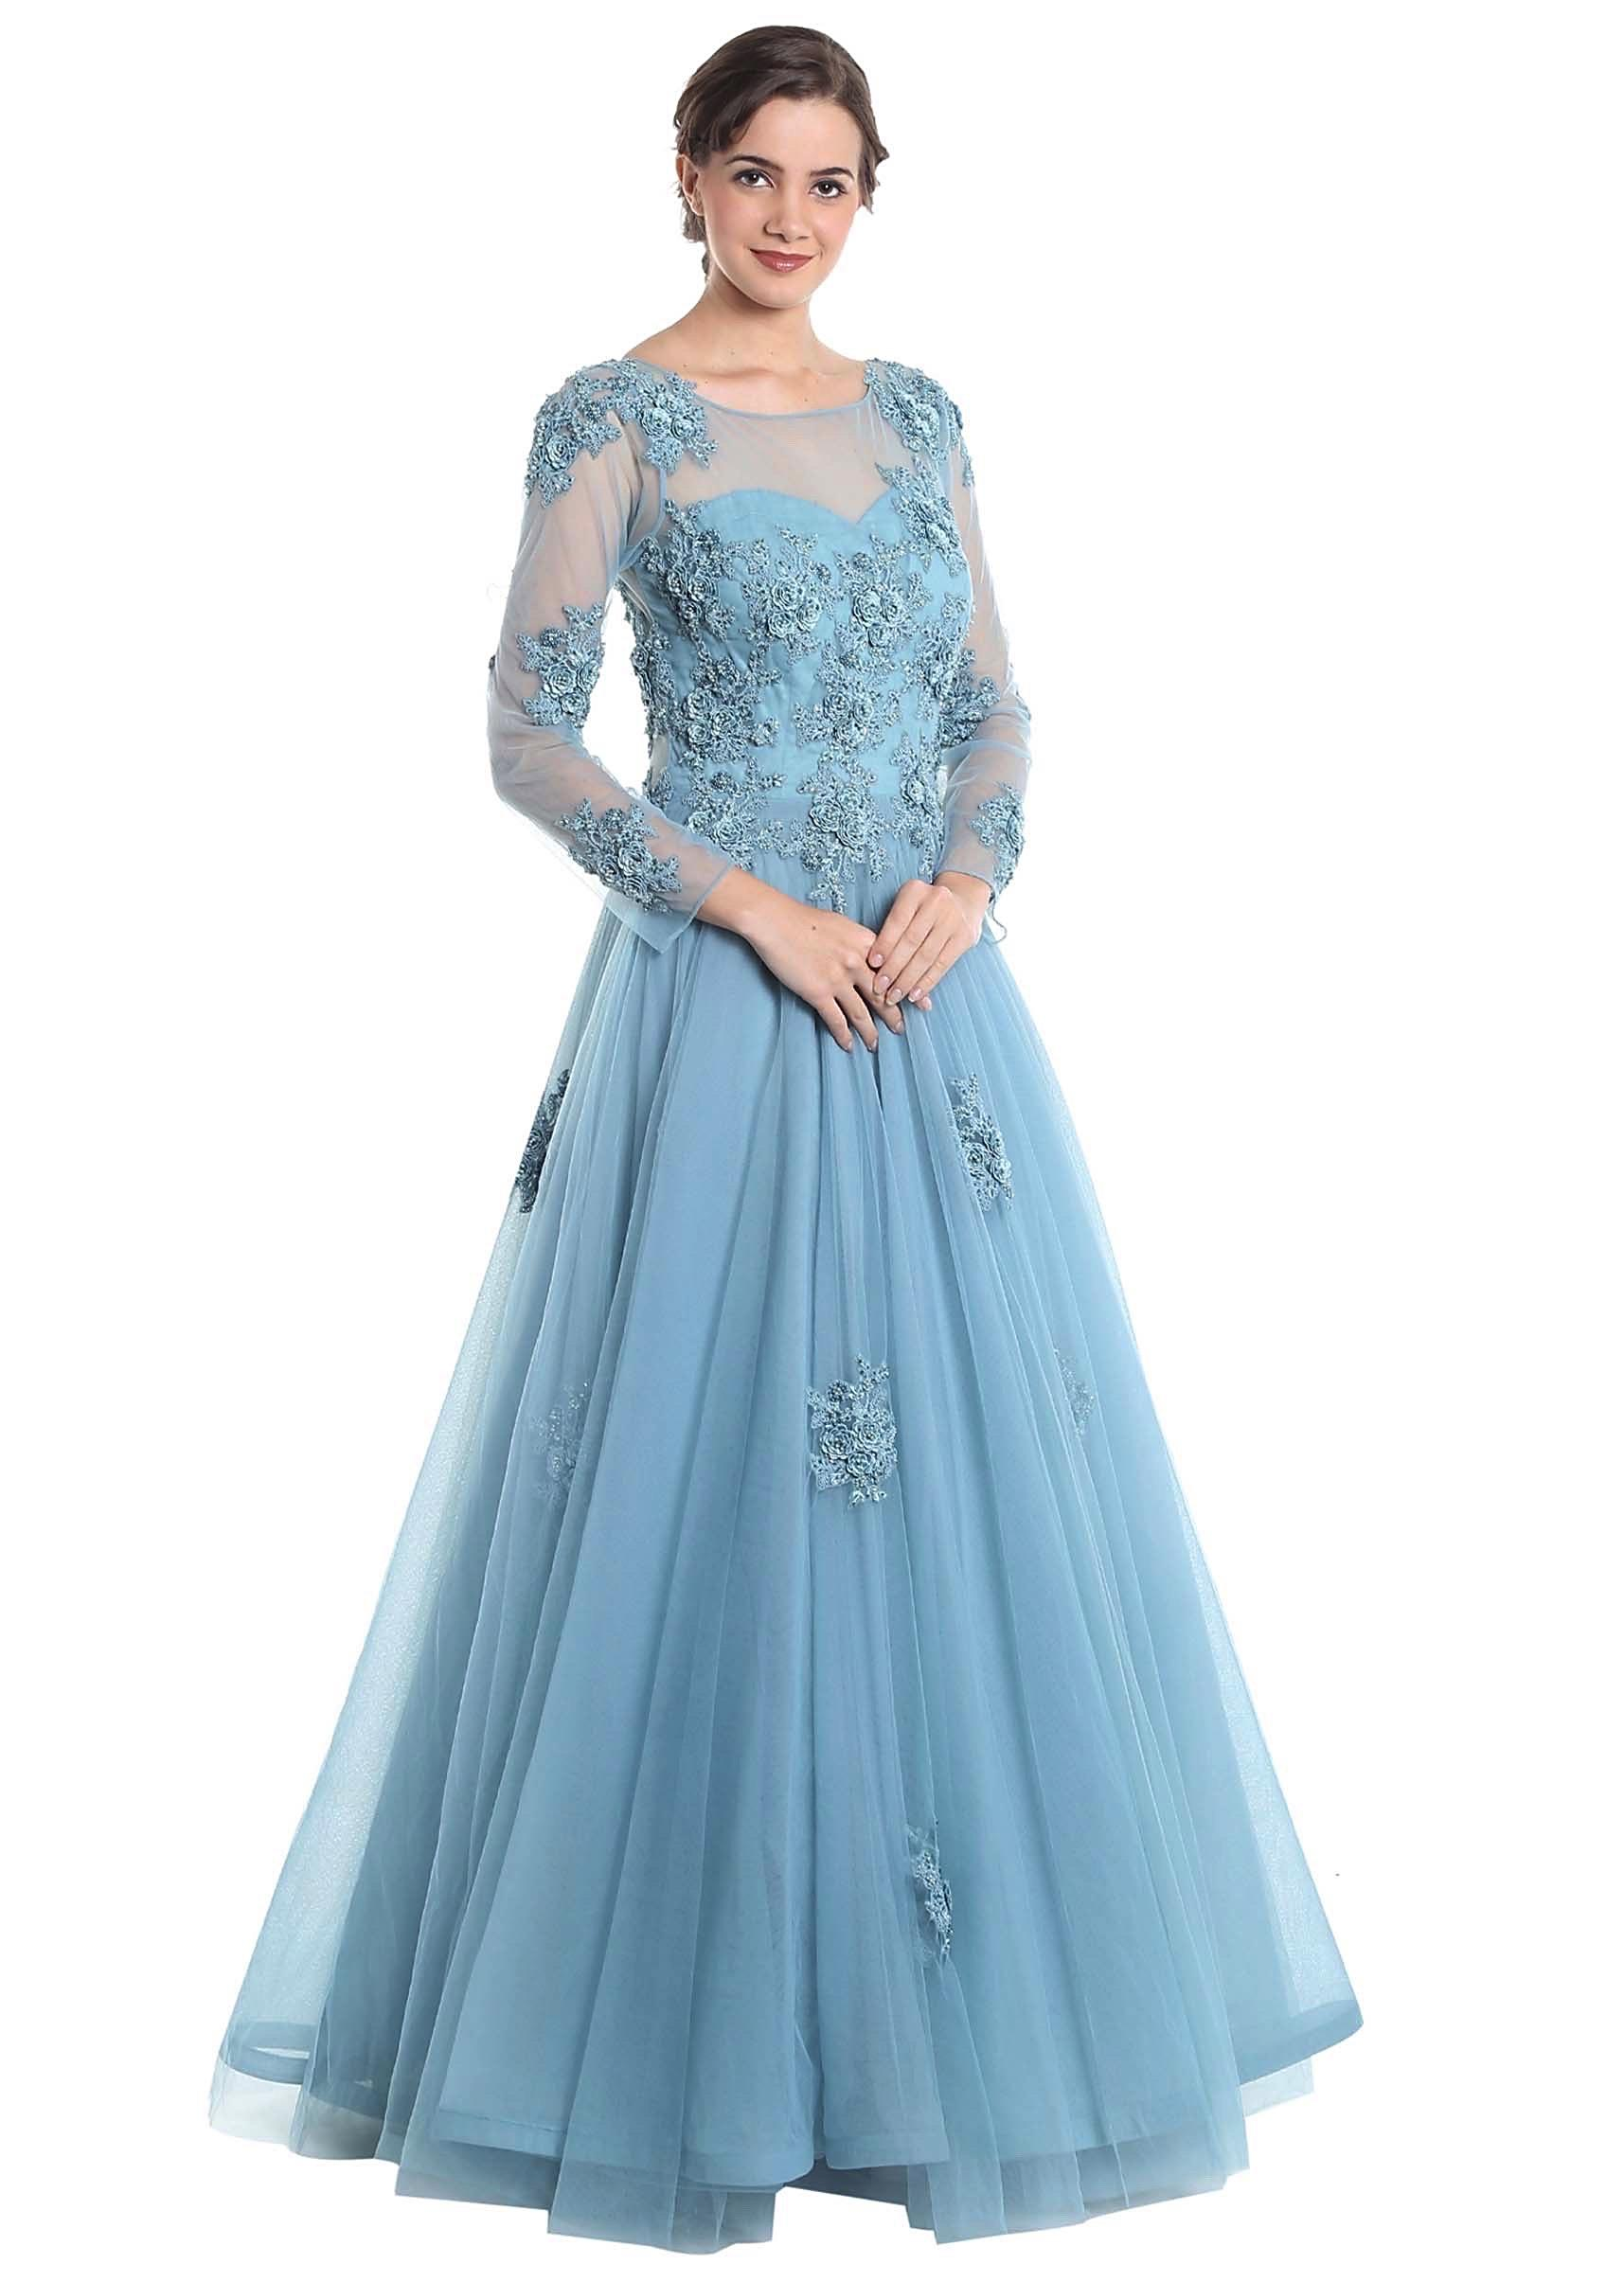 Grey blue net gown with 3D flowers and pearl embellishments b062251d1